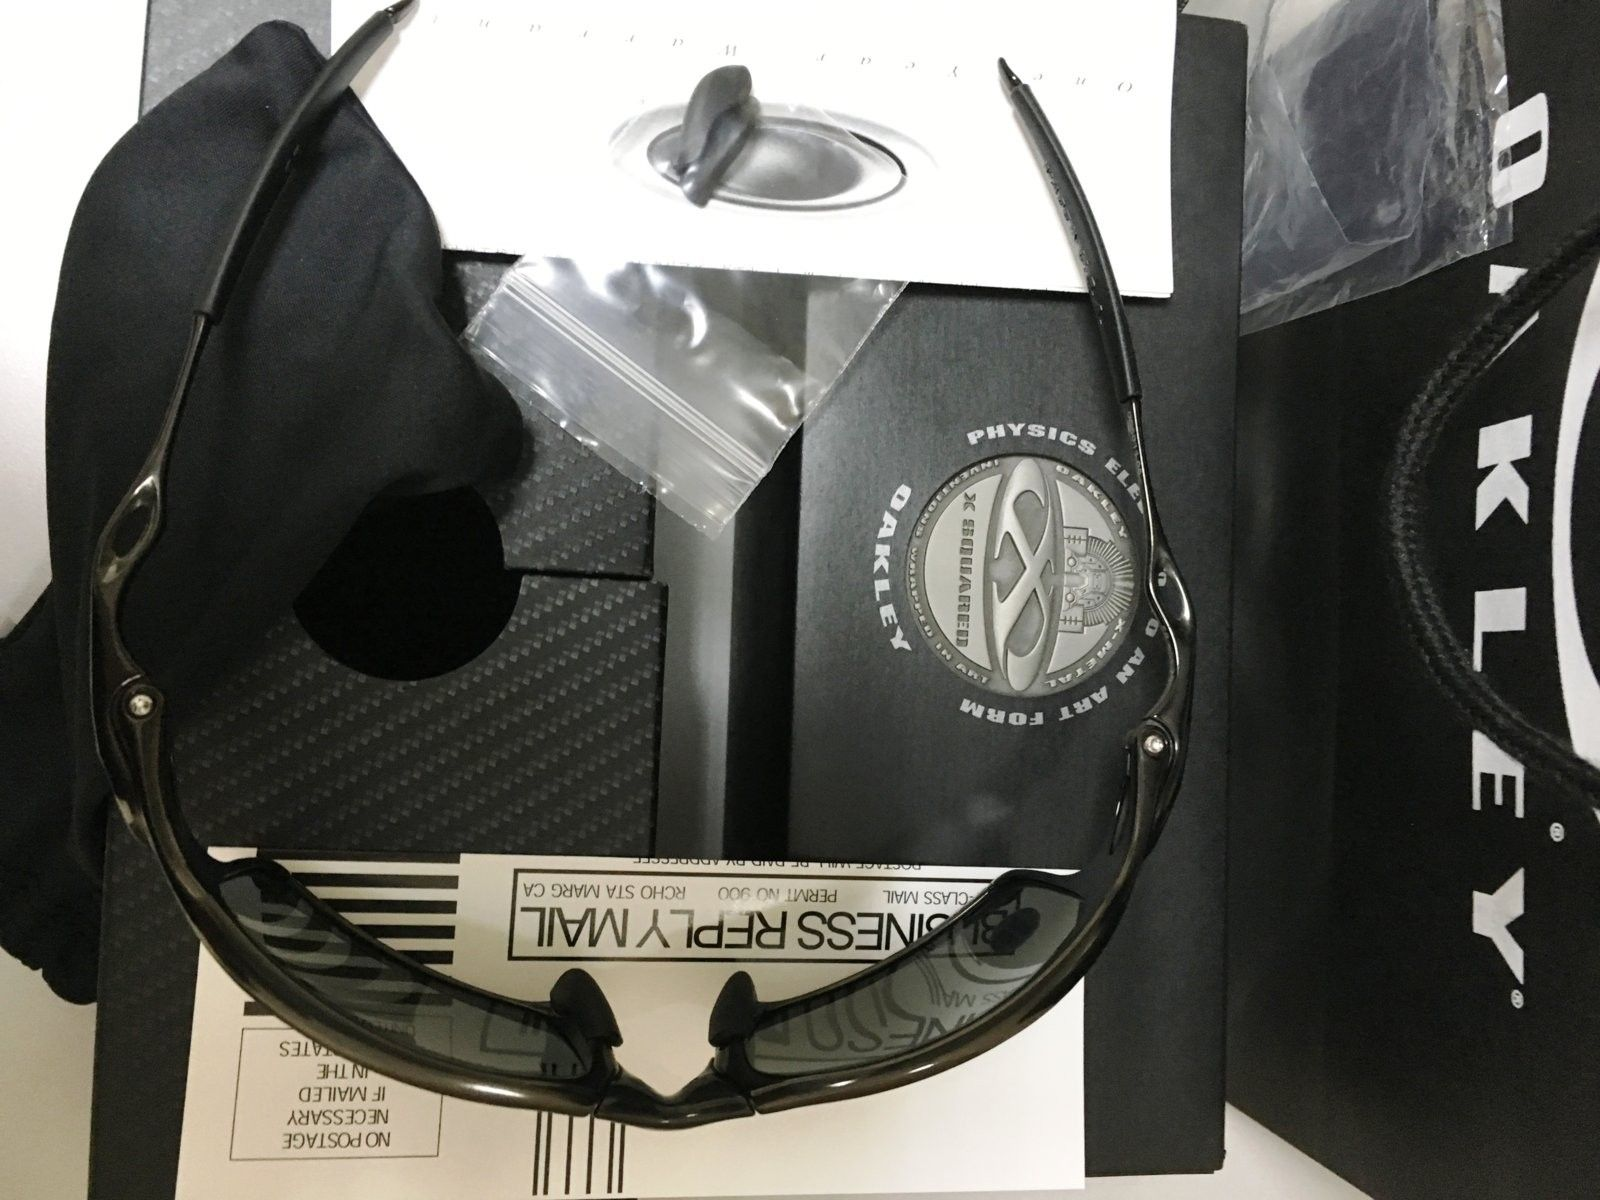 BNIB XS Polished Carbon w/ BIP  dropped USD 530 all in - image 6.jpeg